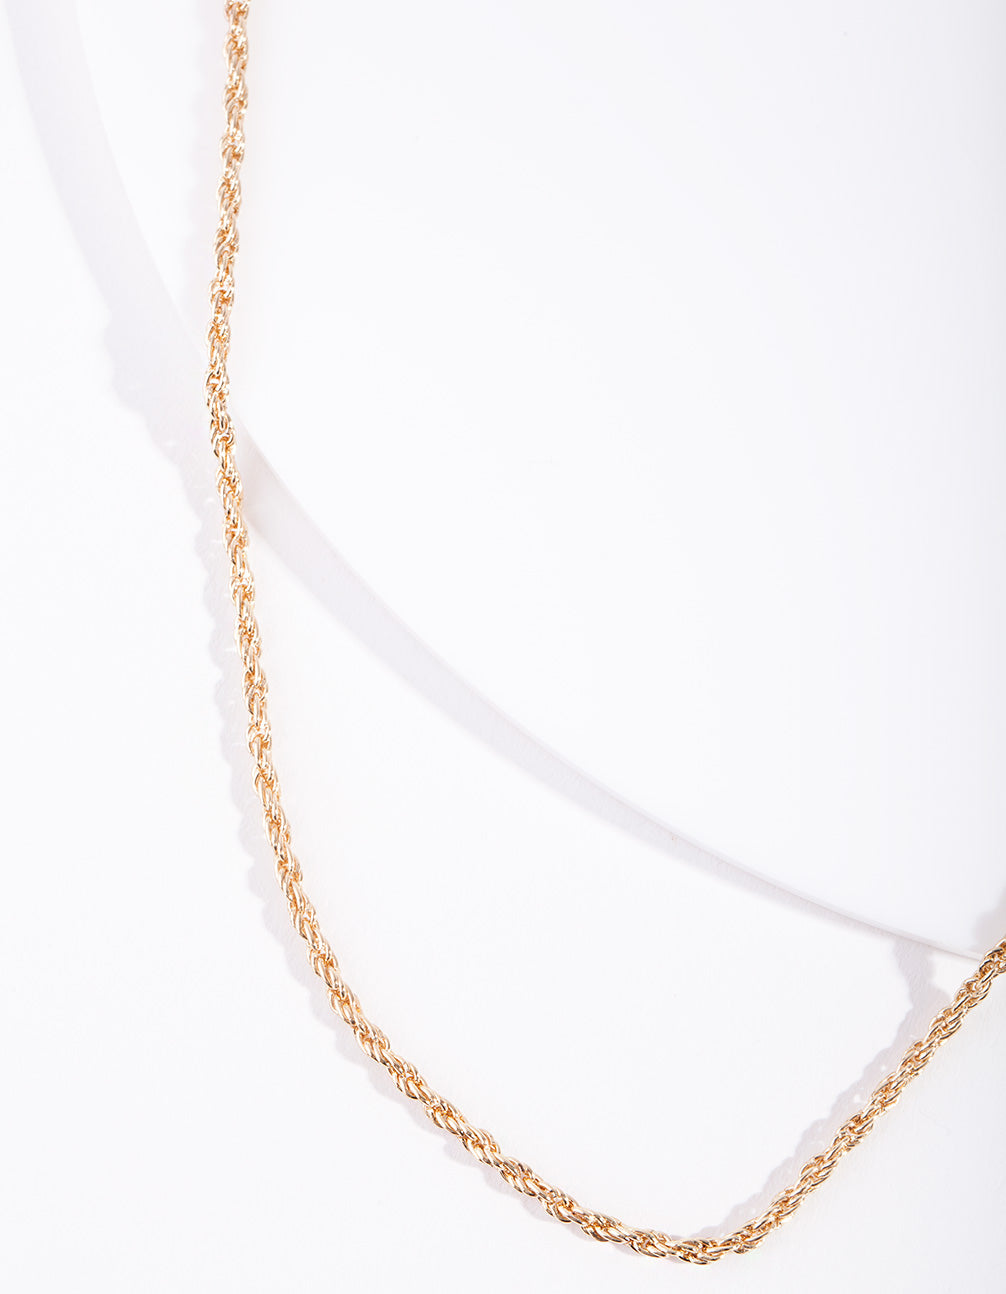 Real Gold Plated Thin Necklace